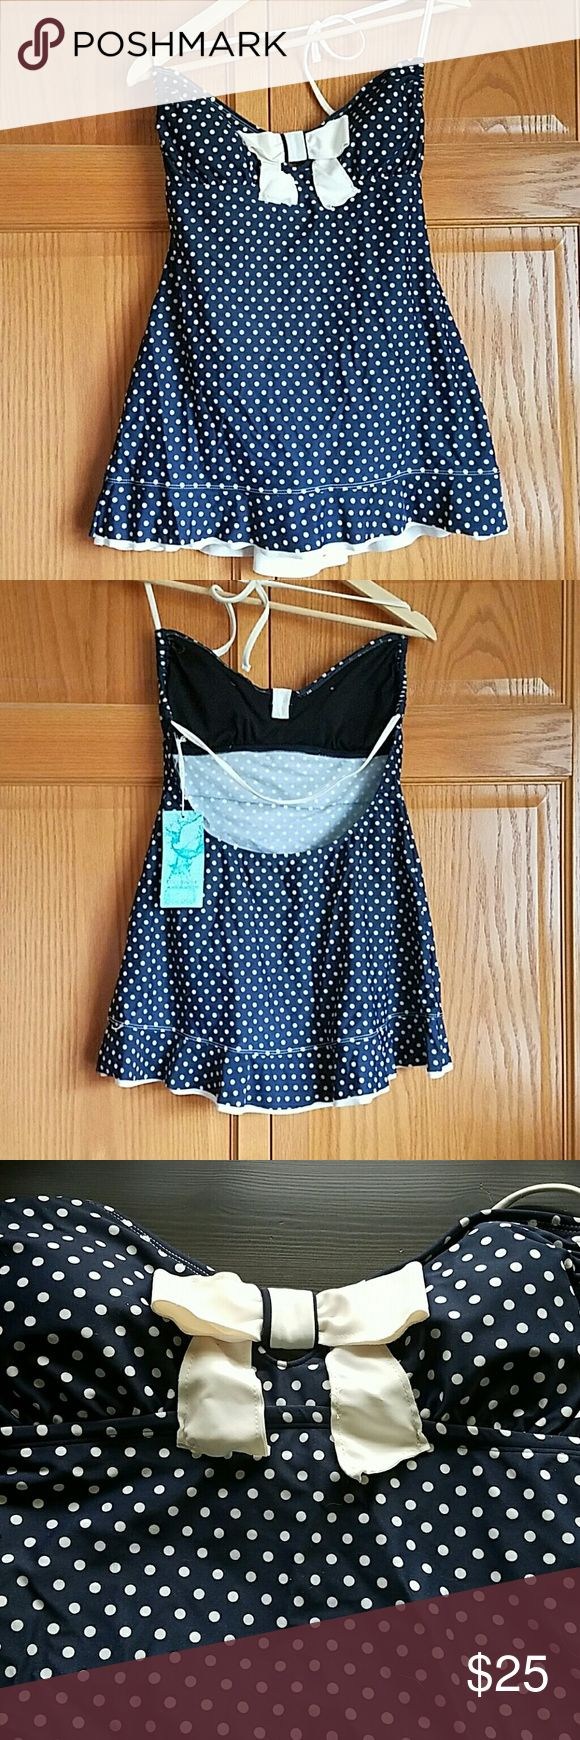 Nwt Polka dot one piece New, with tags, polka dot Navy and White pin up style one piece. Low back, cut bow in front. Eco Swim Swim One Pieces